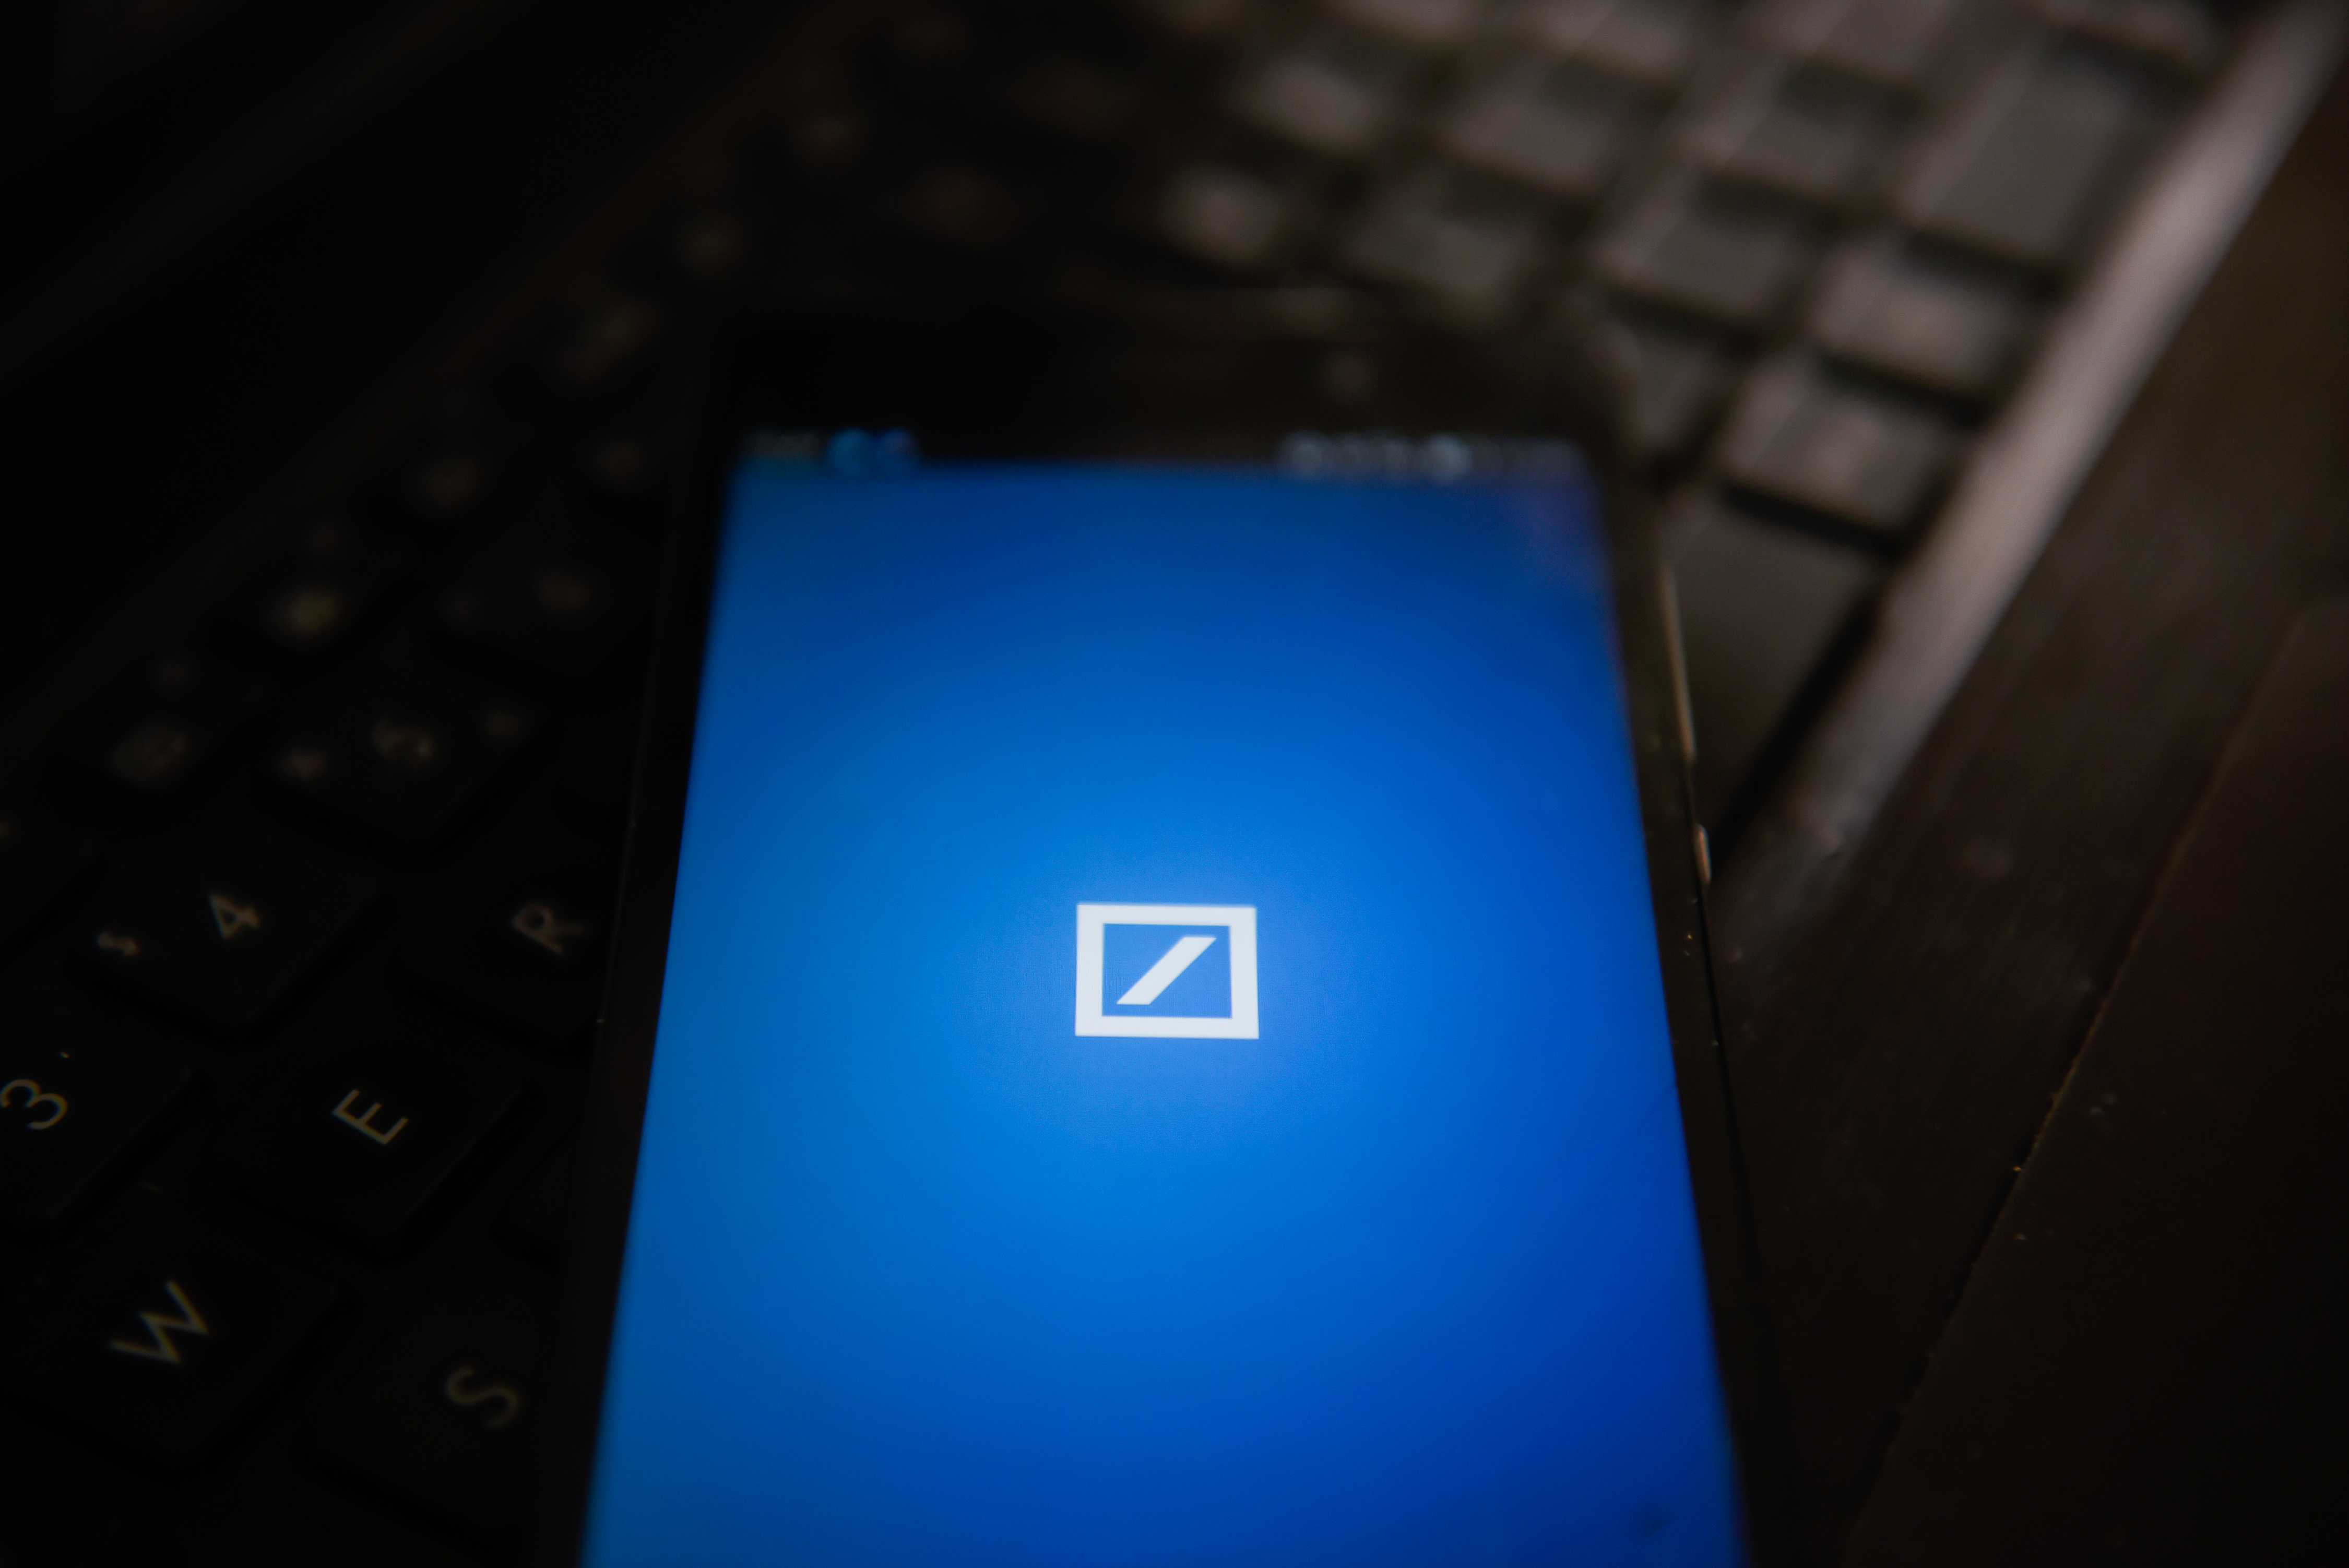 Deutsche bank app is seen in an Android mobile device